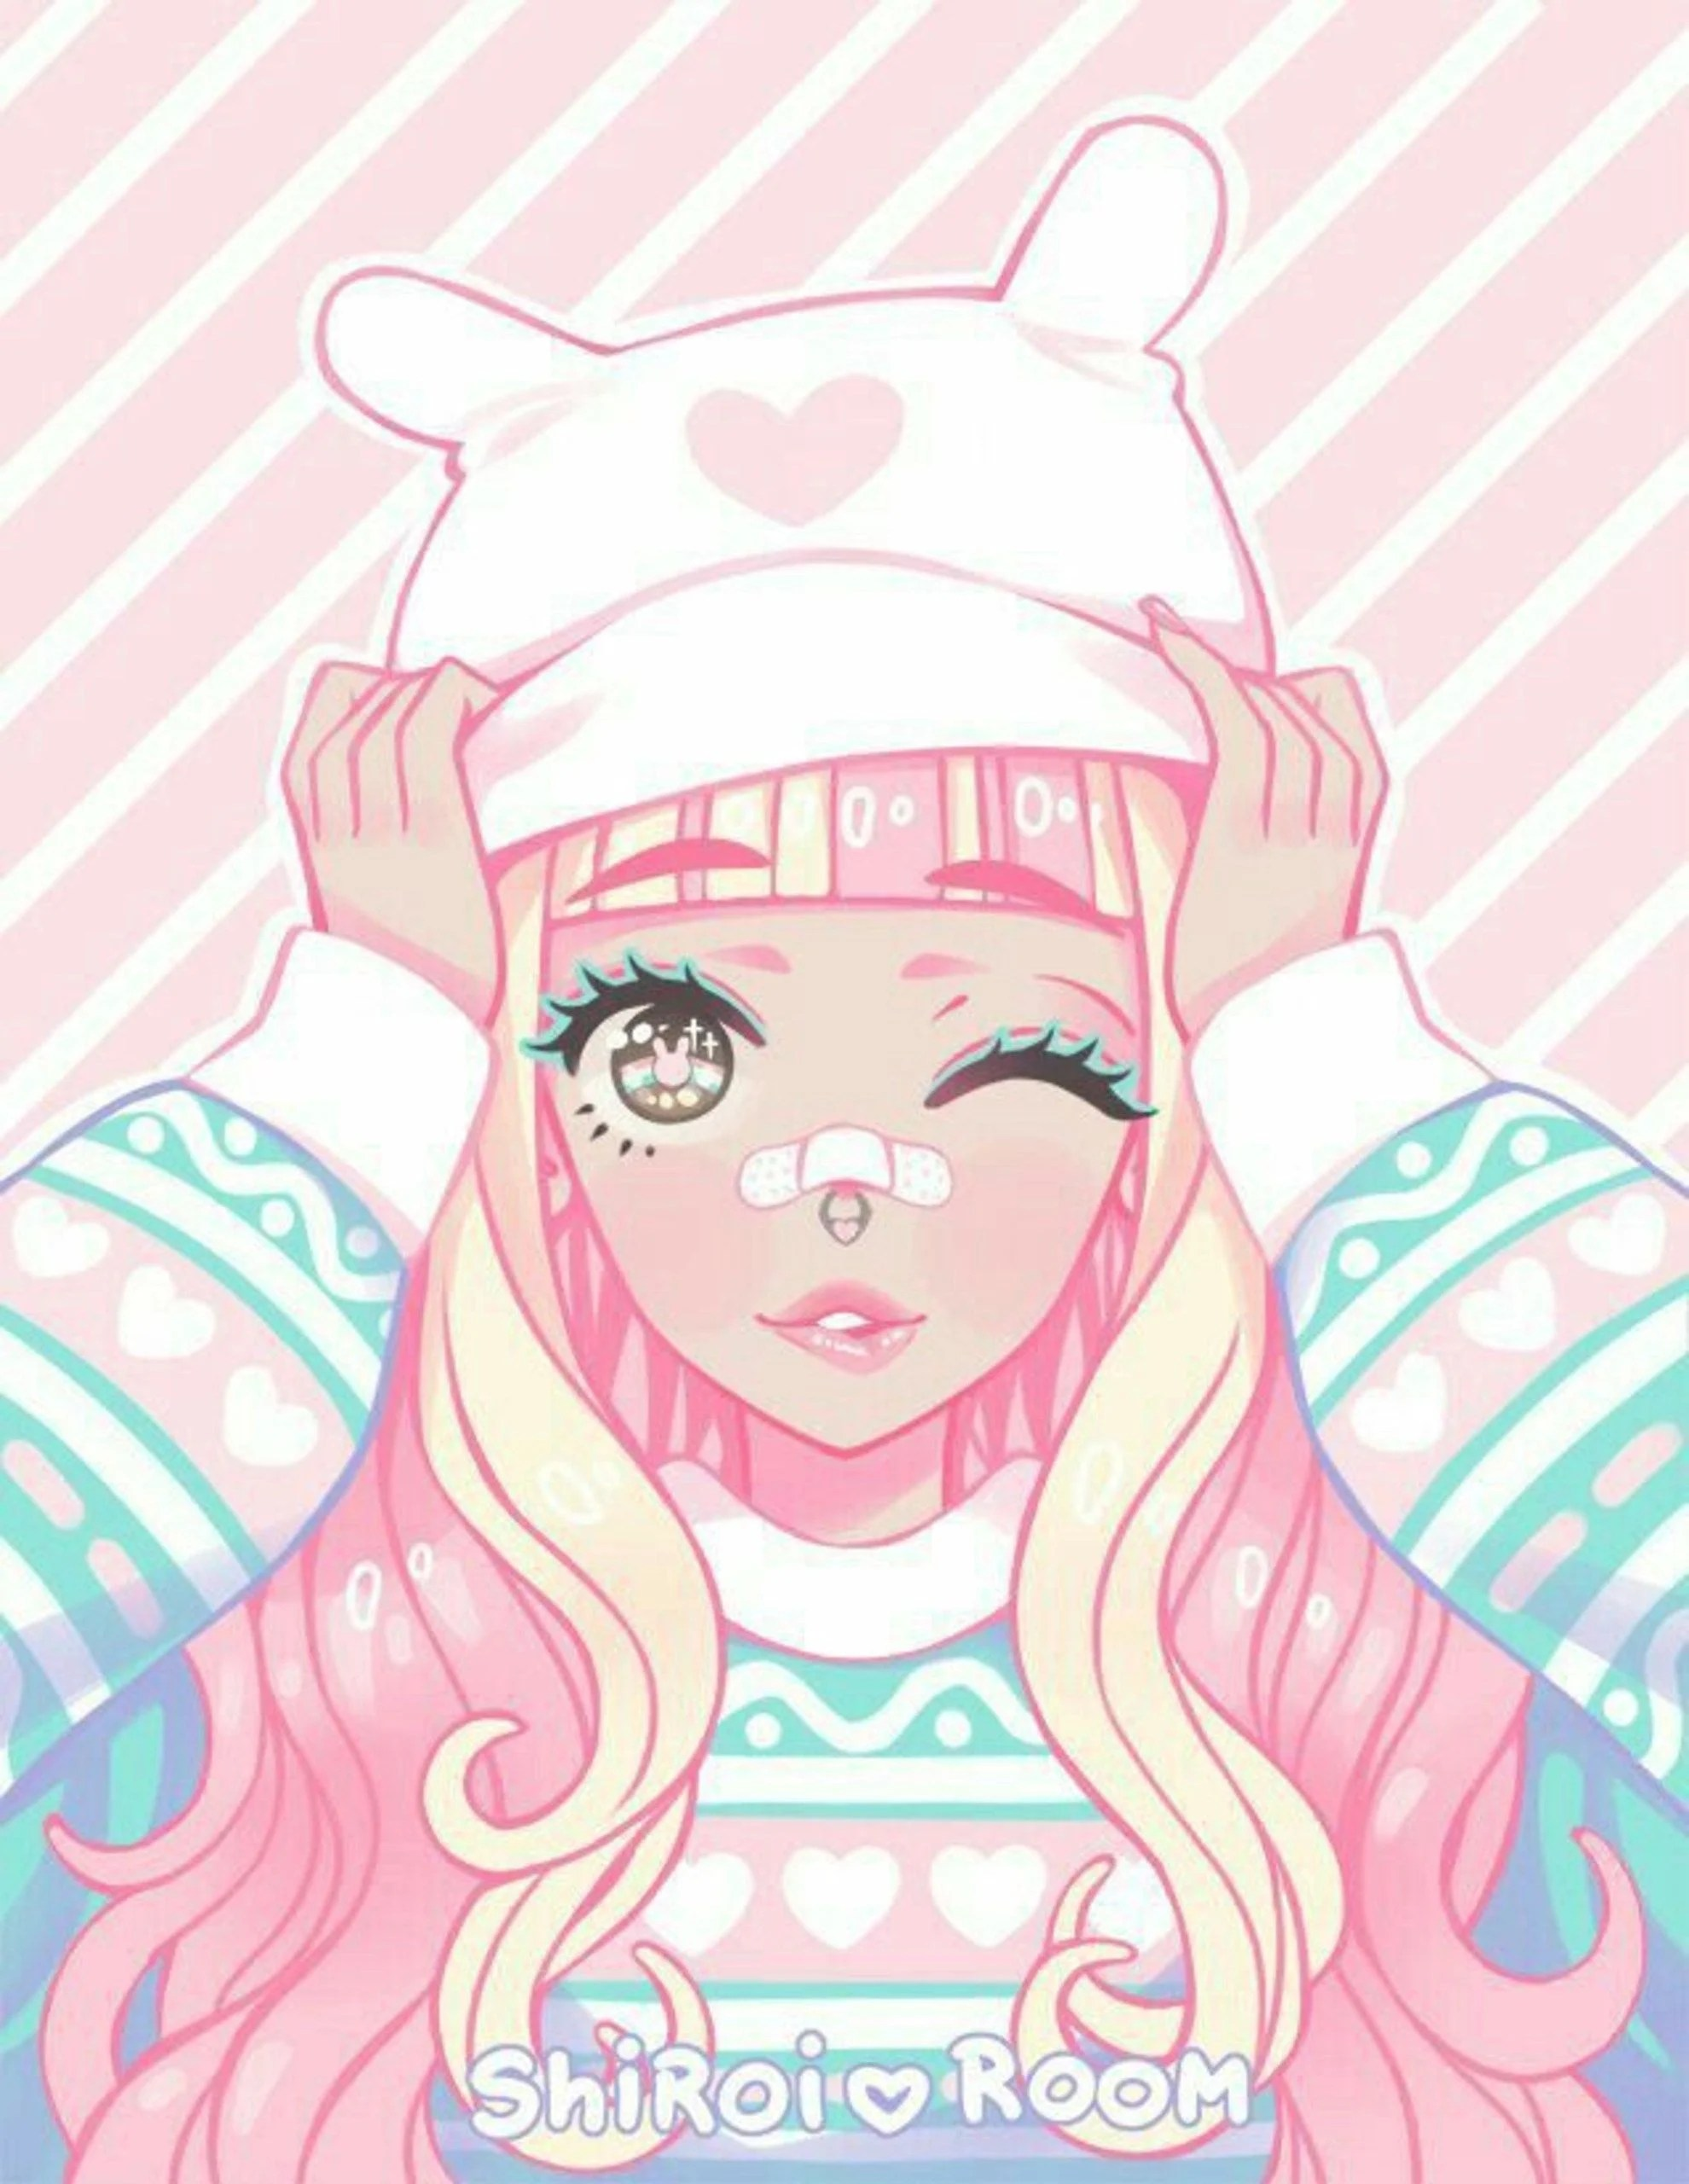 Anime Kawaii Aesthetic : anime, kawaii, aesthetic, Kawaii, Pastel, Aesthetic, Wallpapers, Backgrounds, WallpaperAccess